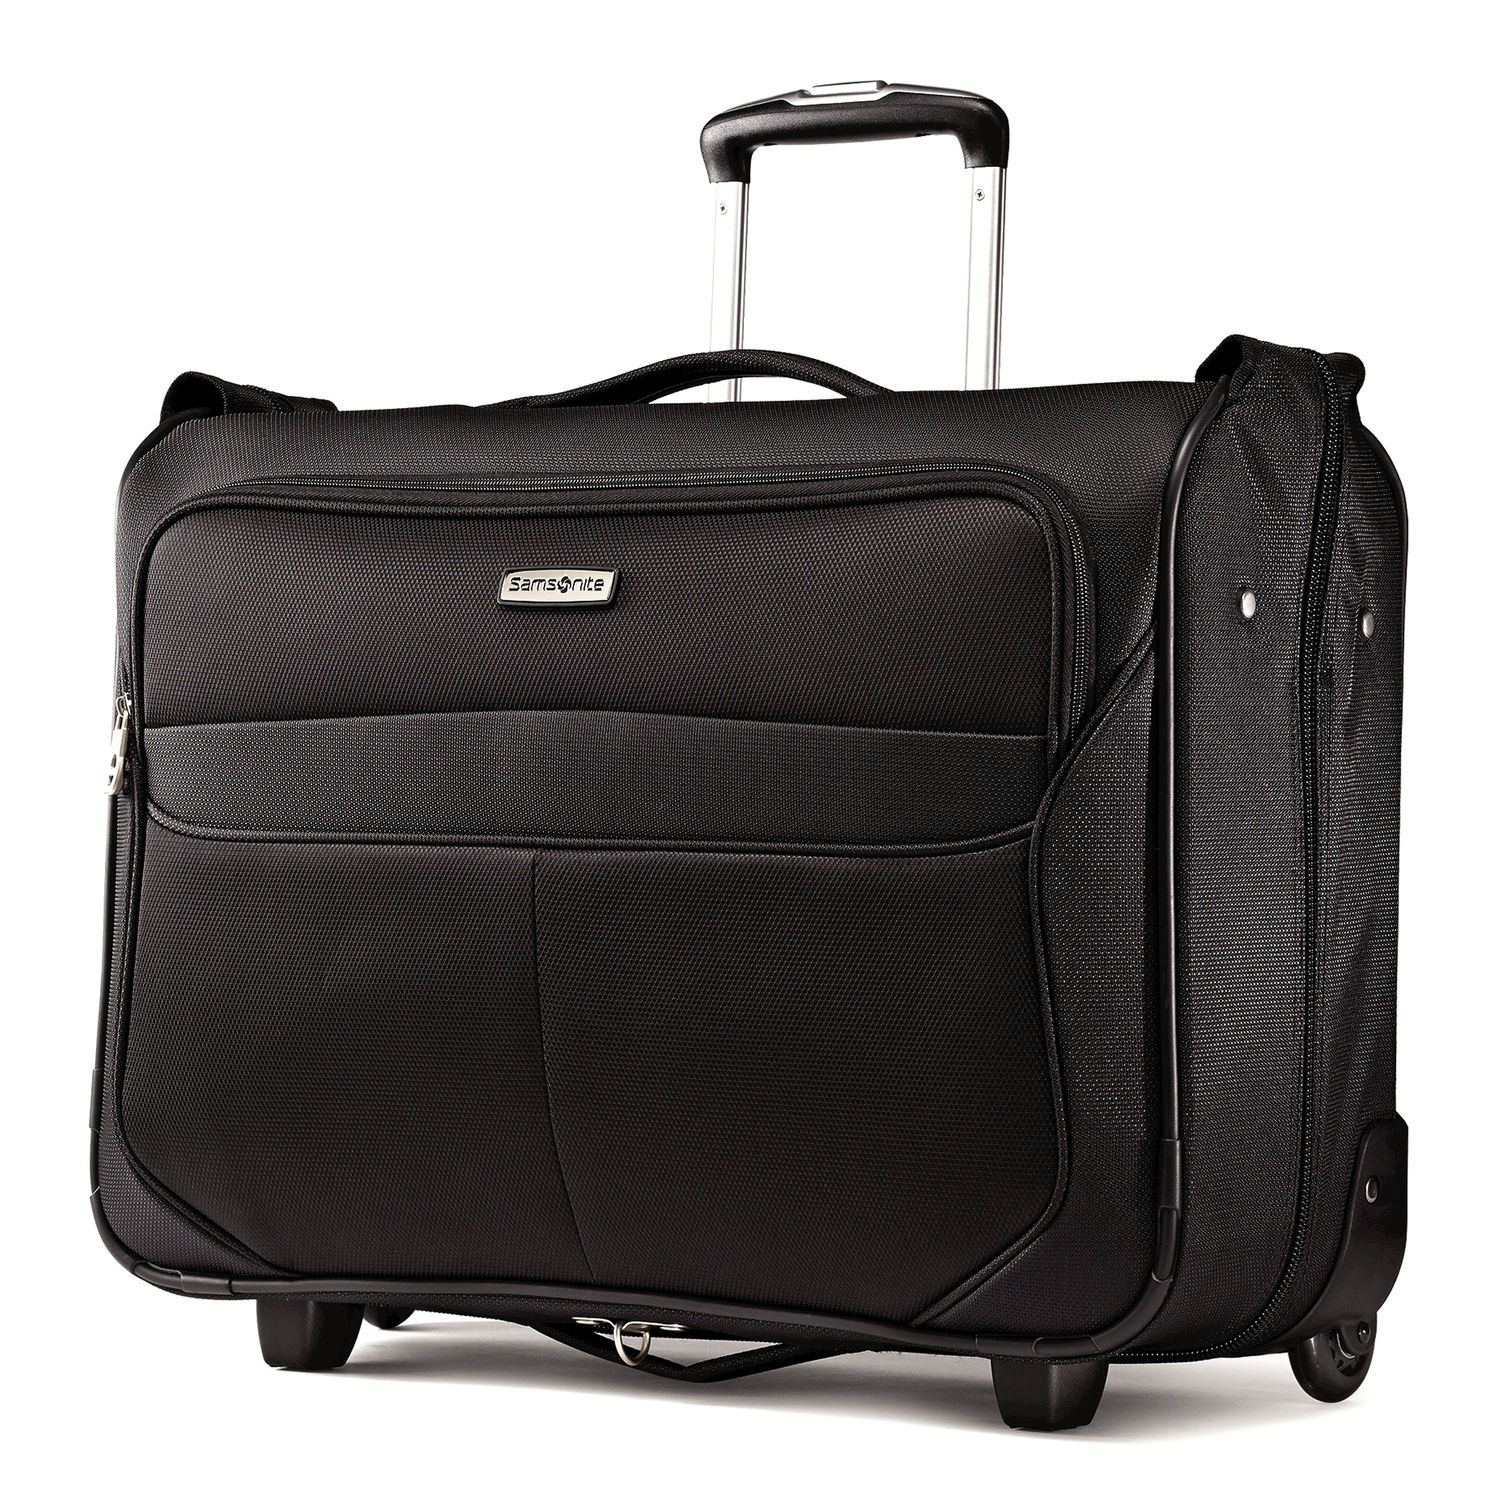 e54526dcc6 19 Best Carry On Garment Bags for Busy Business Travelers - Travel ...